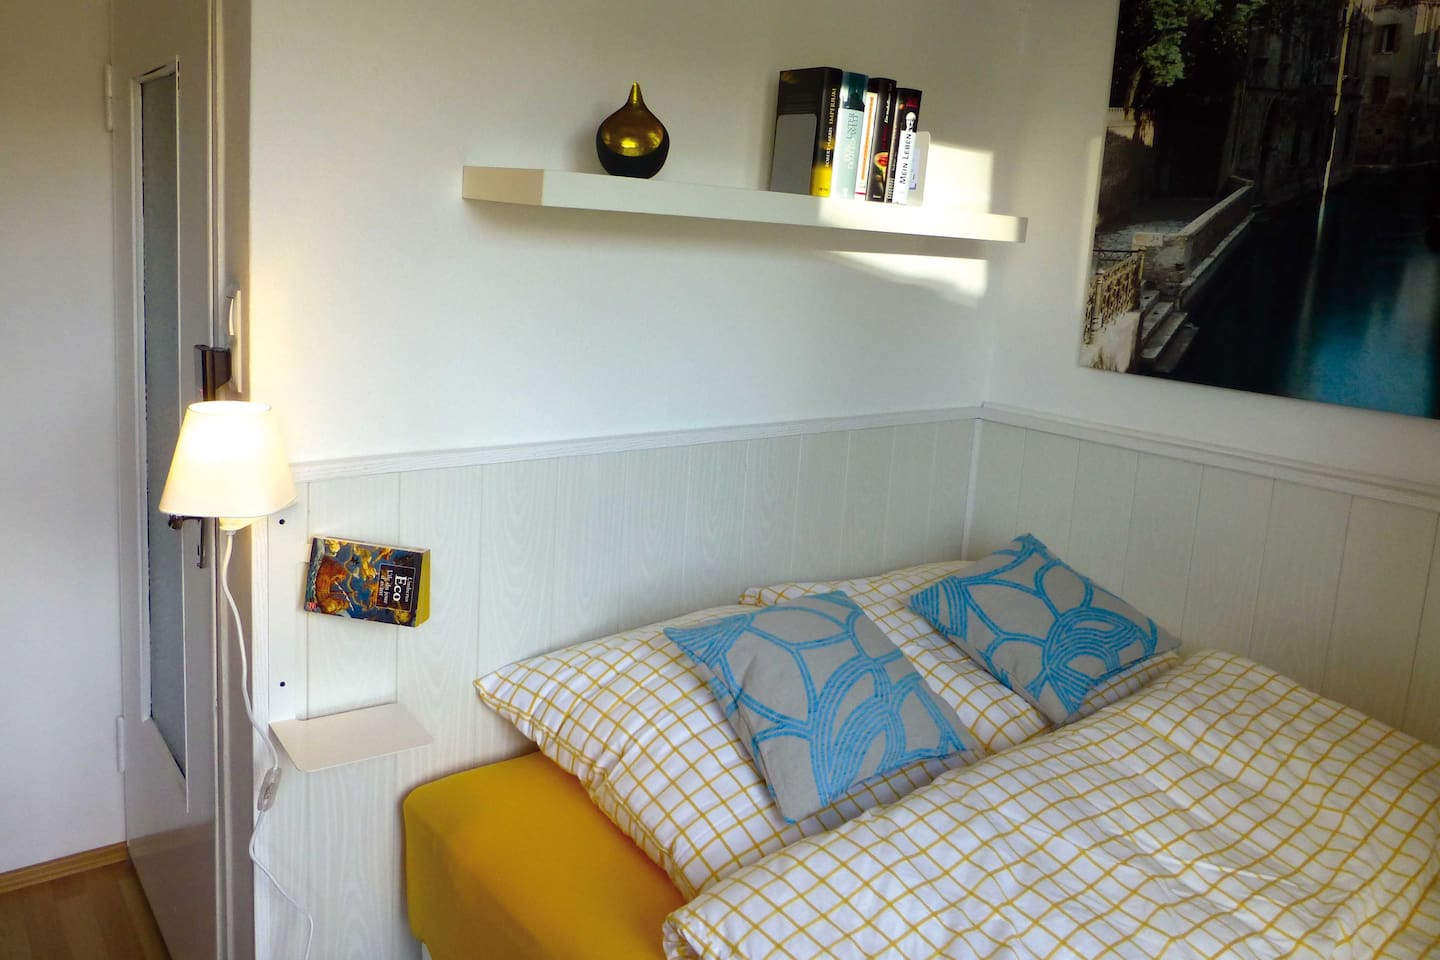 Your bed - cocooning in an alcove